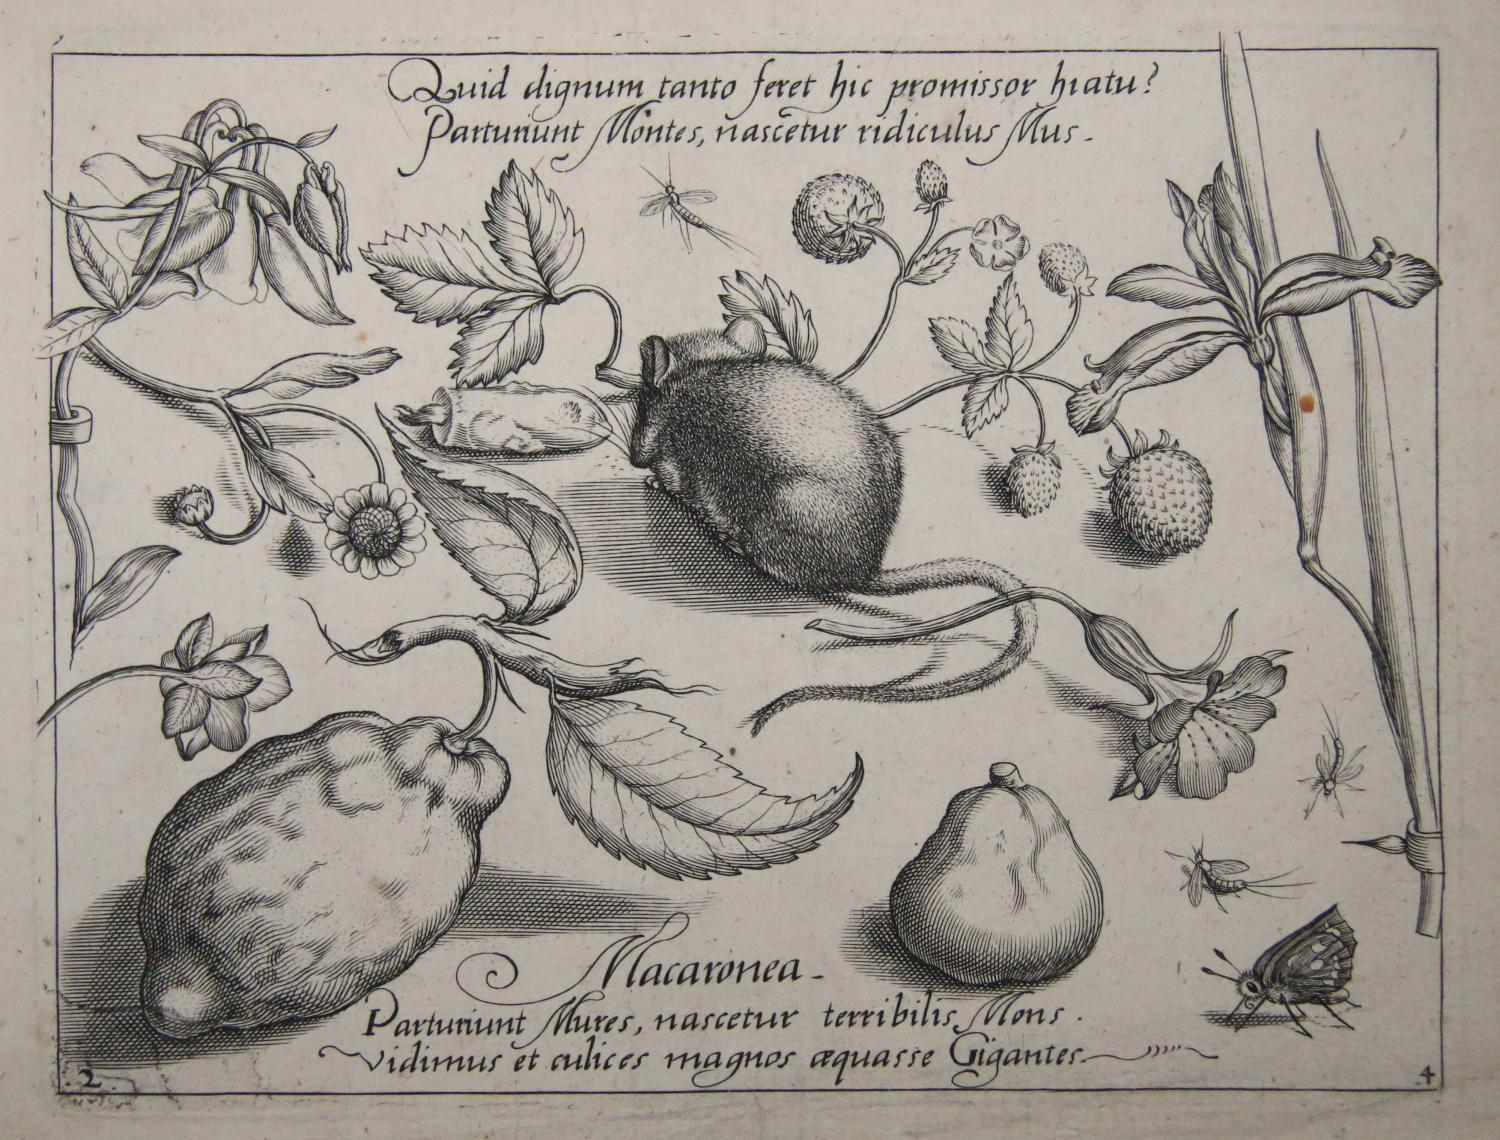 Jacob Hoefnagel after Joris Hoefnagel, Quid dignum tanto feret hic promissor hiatu? (What will this promisor produce worthy of such jawing?), Part IV, plate 2 from Archetypa Studiaque, Frankfurt, 1592. Engraving. Museum Purchase through the Robert and Son